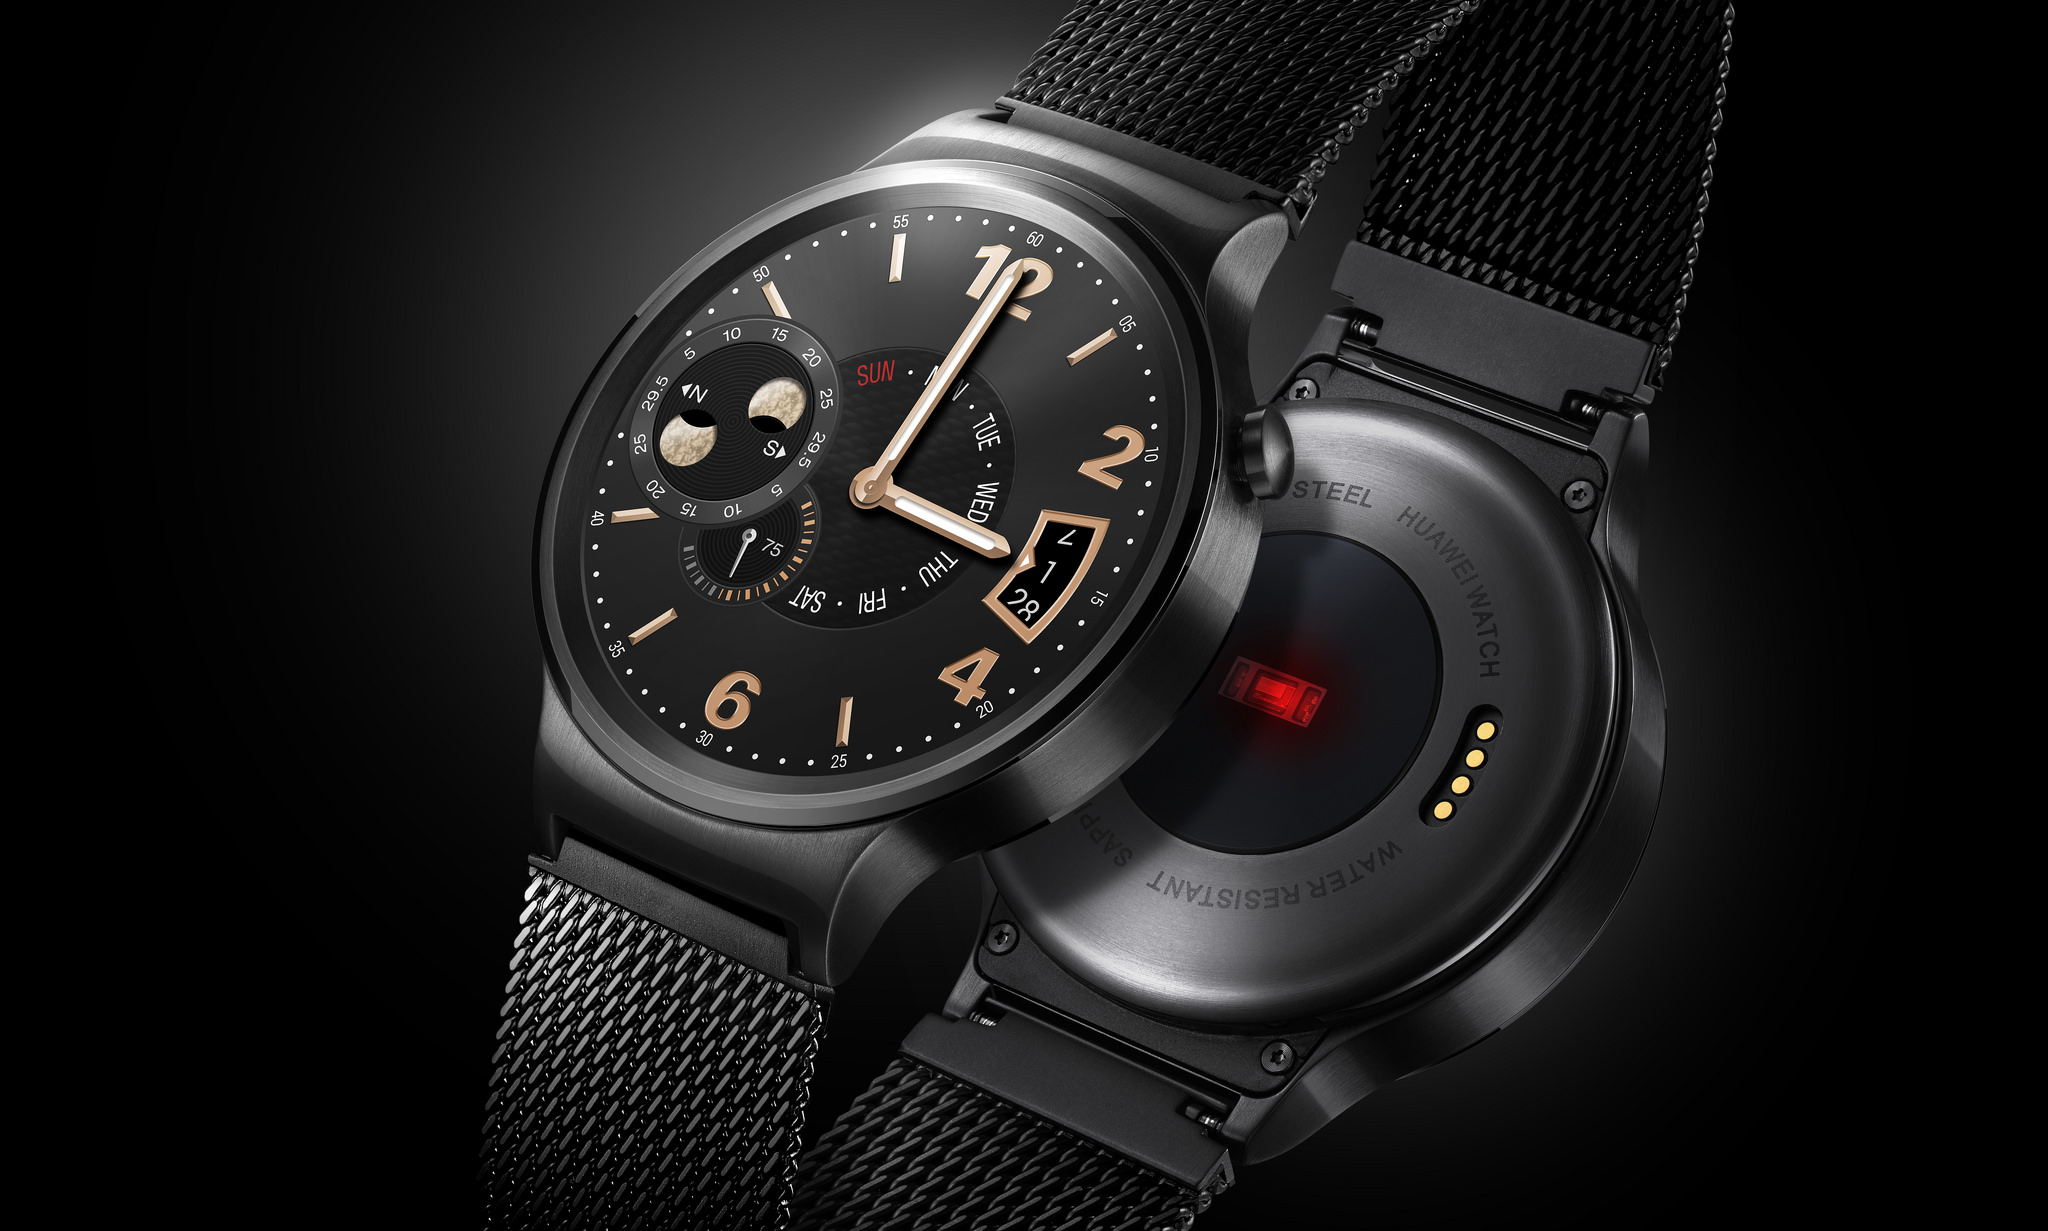 Huawei smartwatch is typical of many 2nd generation smartwatches, taking great effort to include physical elements like crown, sapphire crystal, stainless steel construction and milanese bracelets but again, it misses the point.